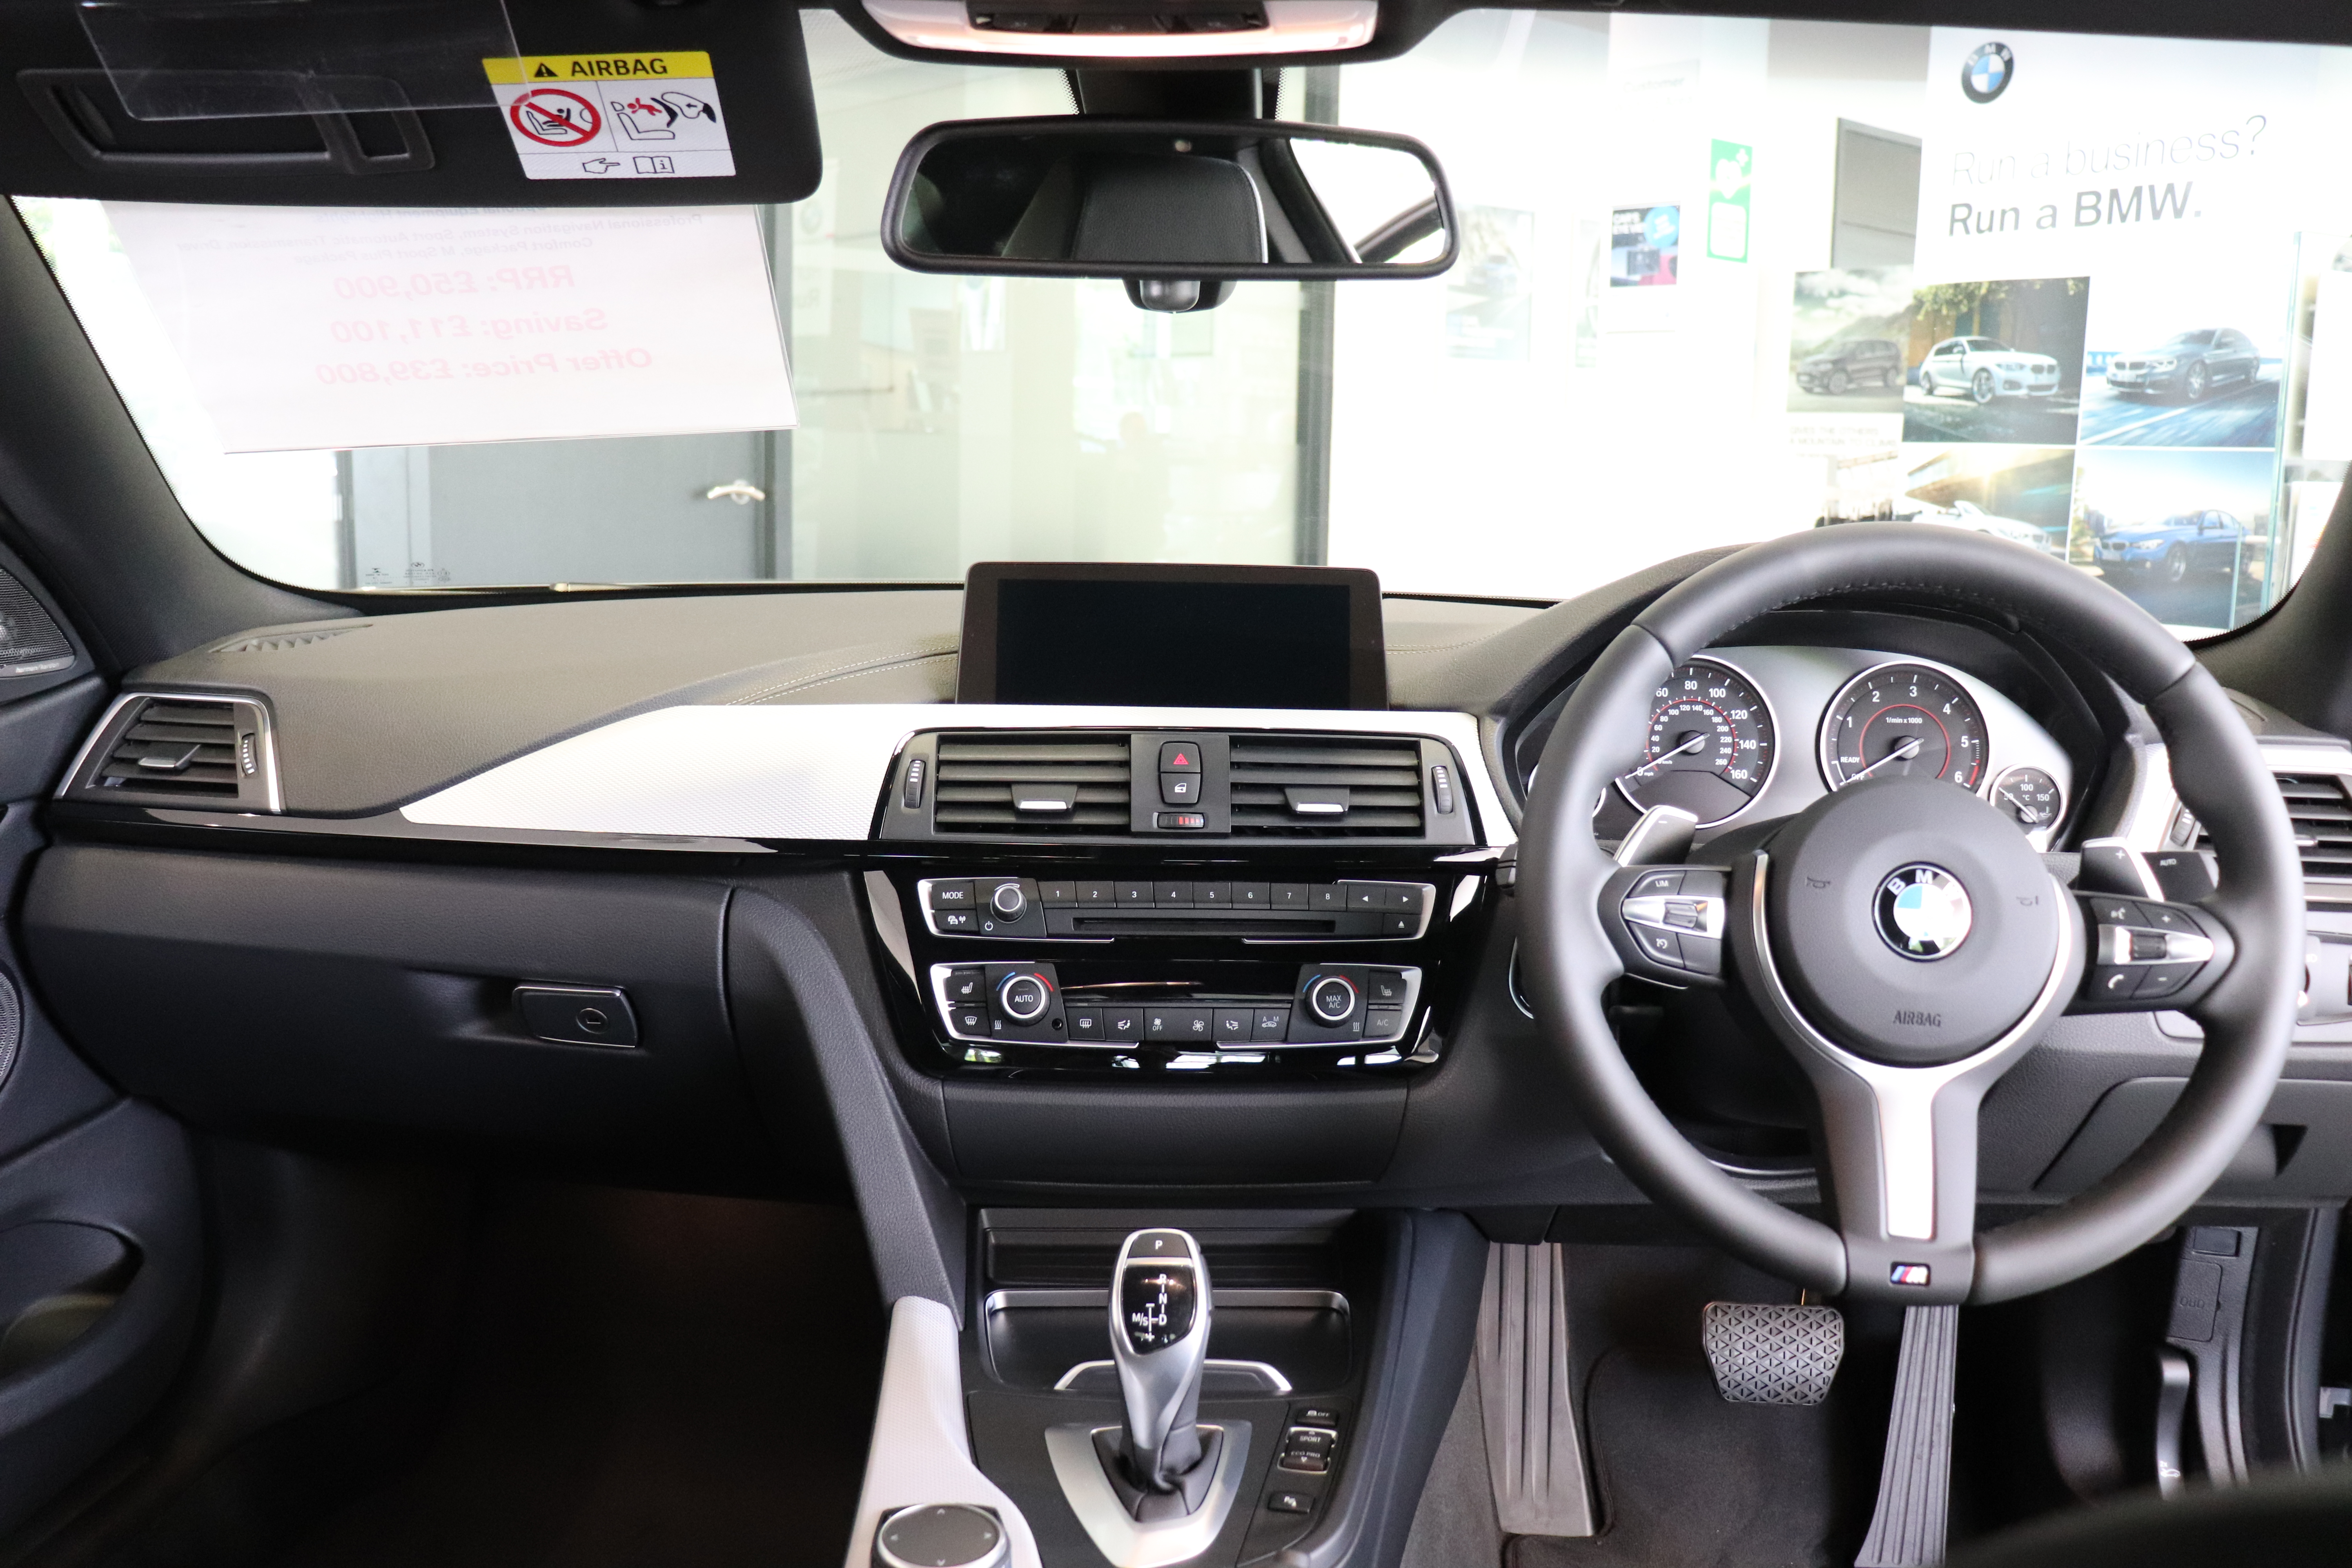 File 2018 Bmw 435d Xdrive M Sport Coupe Interior Jpg Wikimedia Commons